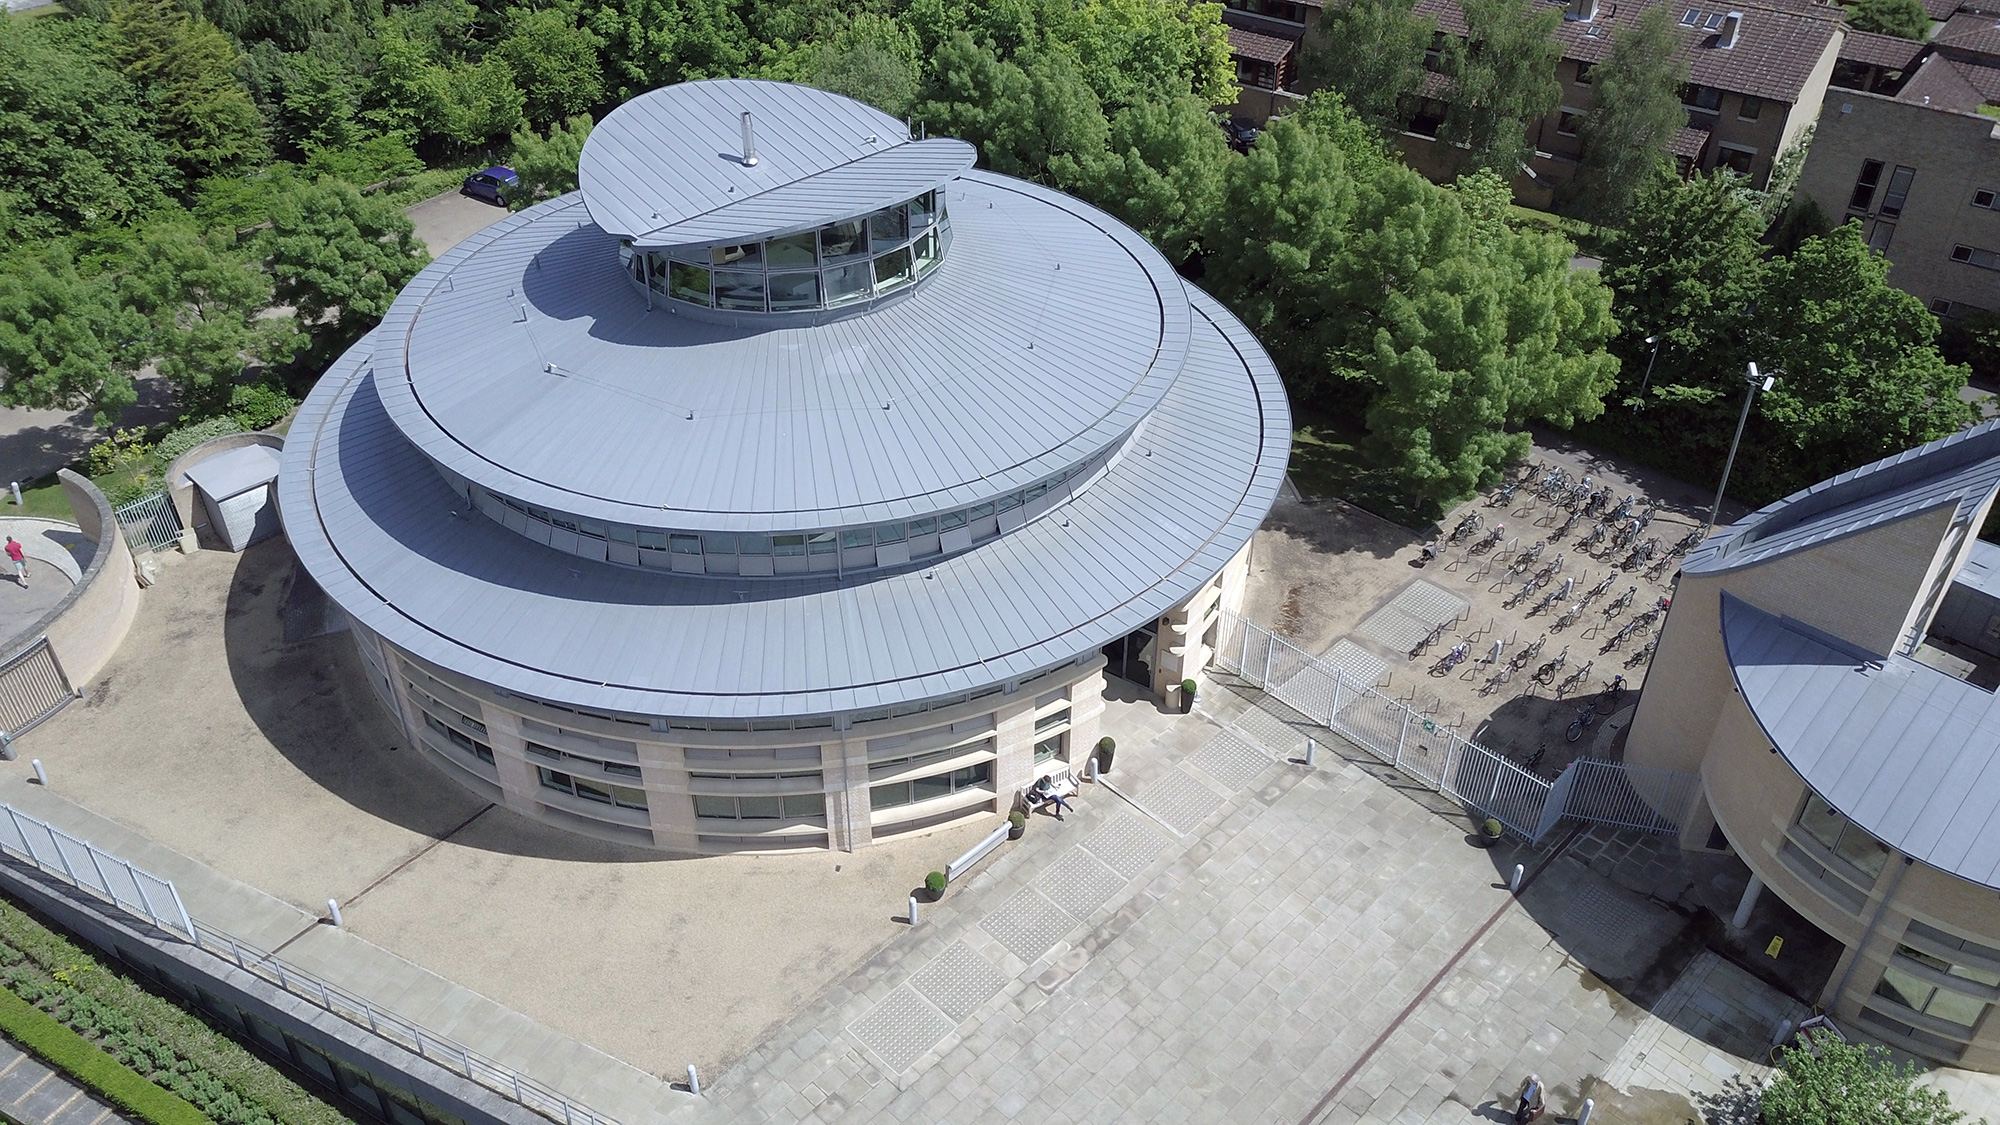 [IMAGE = Library Drone Shot]